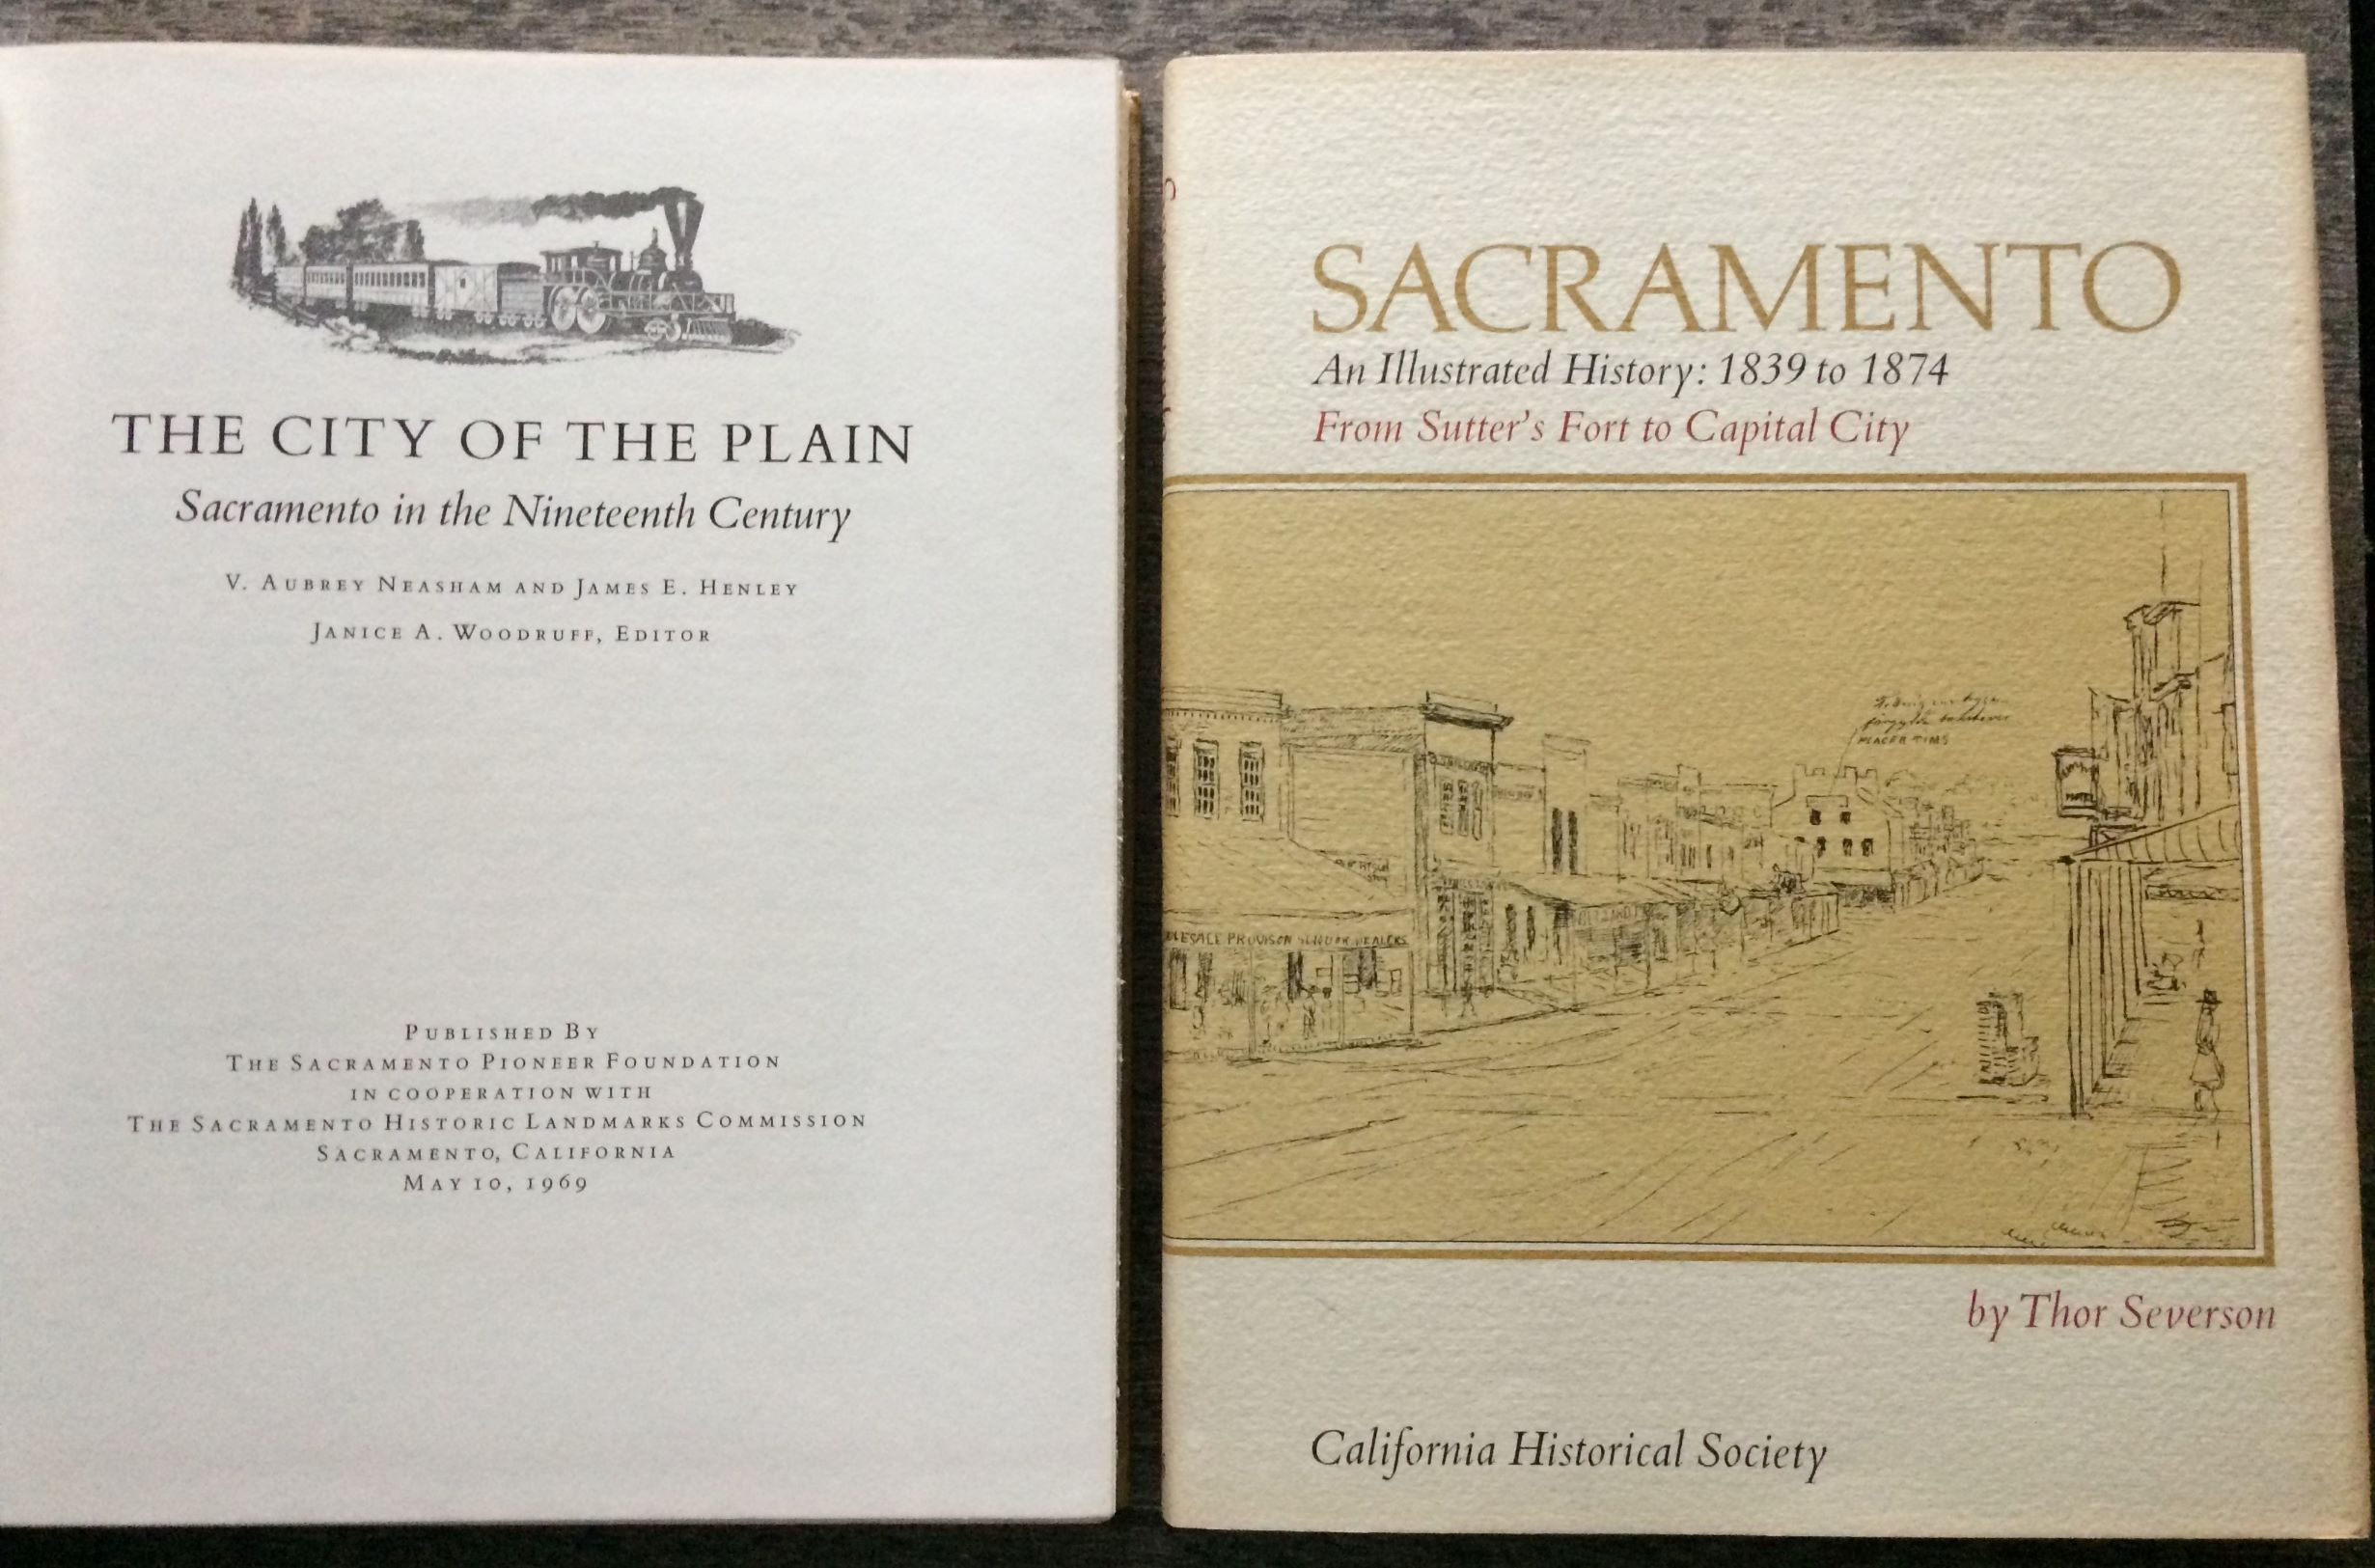 Image for [Two Titles]: The City of the Plain, Sacramento in the Nineteenth Century [together with] Sacramento, an Illustrated History: 1839 to 1874, from Sutter's Fort to Capital City.